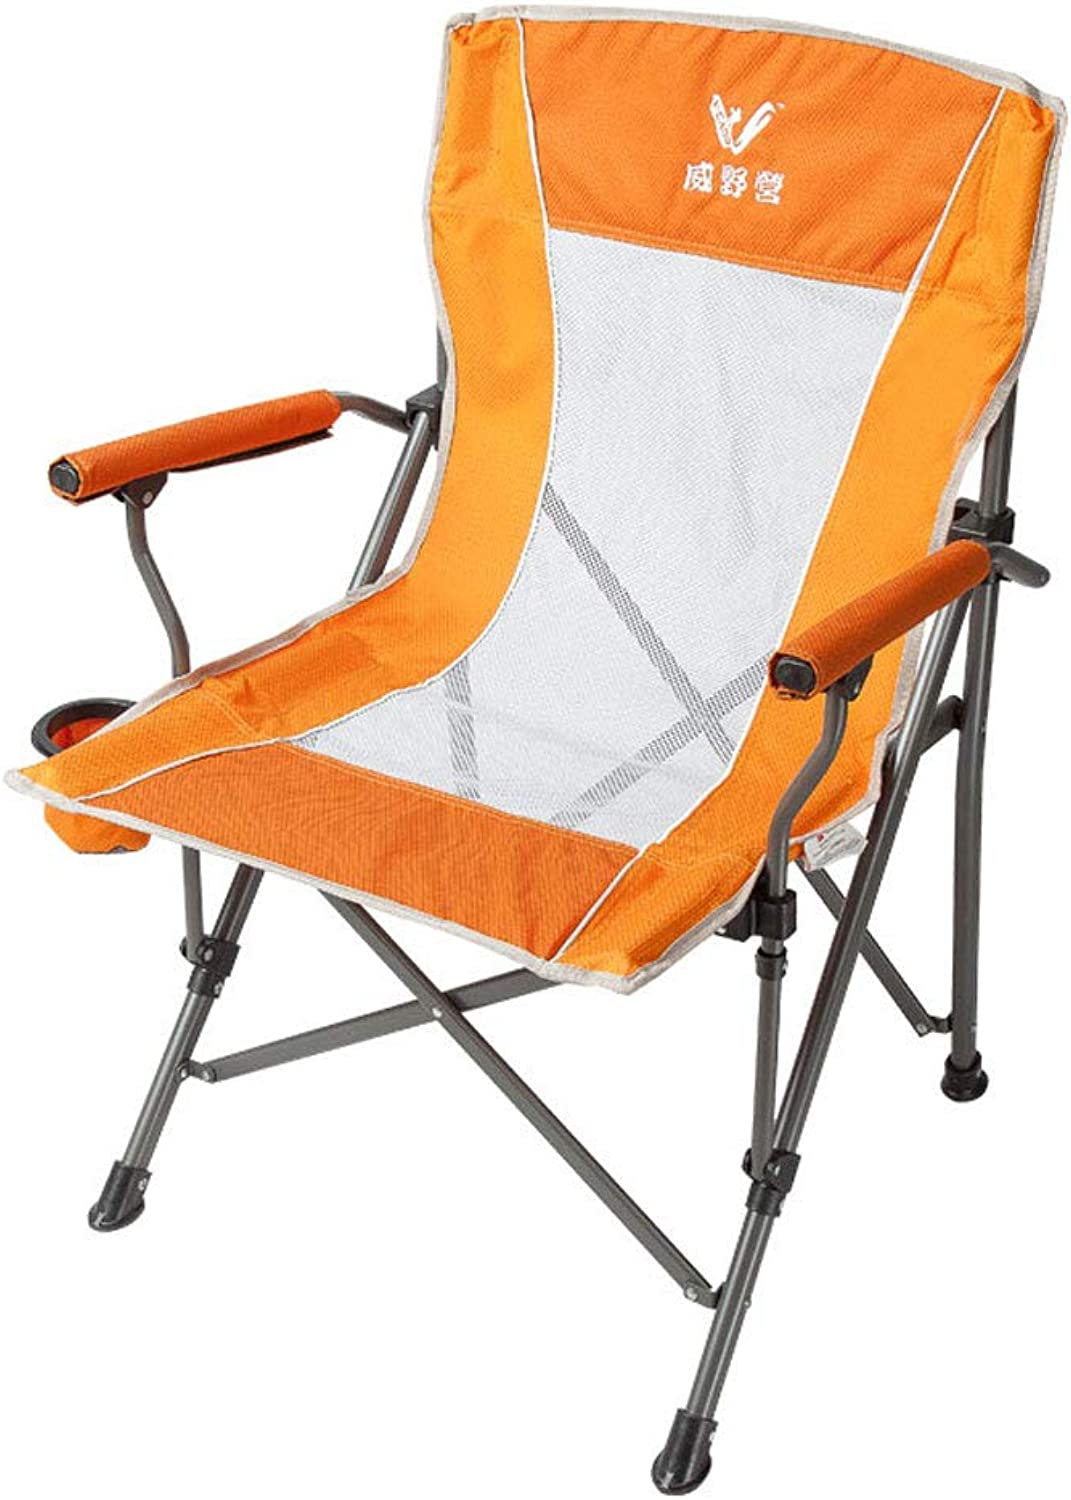 Camping Chair Breathable Folding Chair mesh Yarn Chair Leisure Chair Fishing Chair Beach Chair